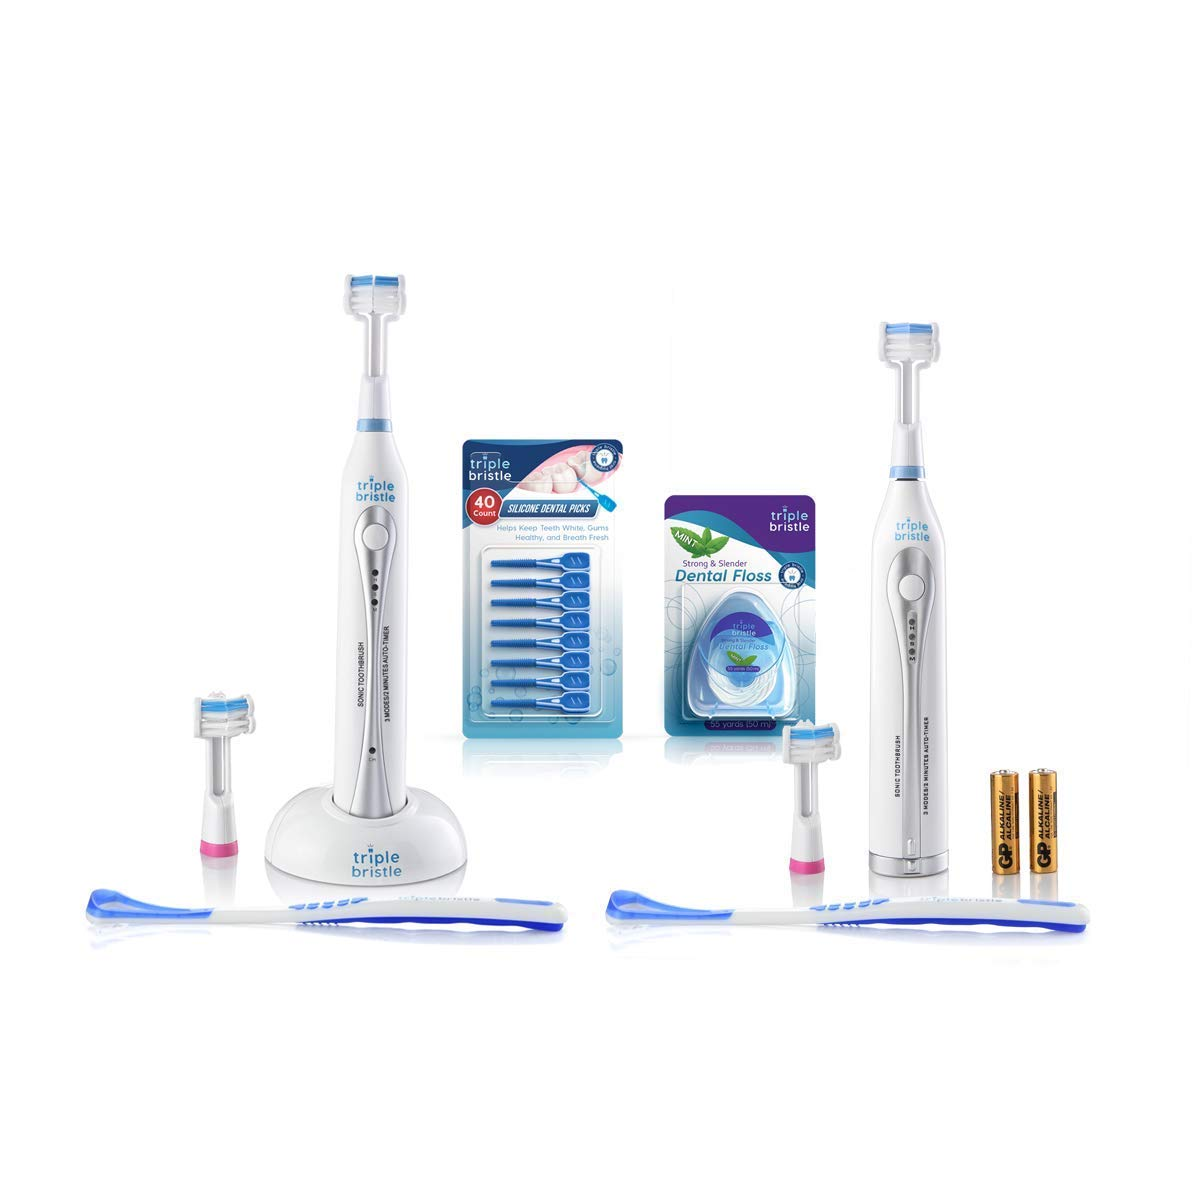 Triple Bristle Original GO Sonic Sale item + Oral New product type Care Kit Toothbrushes